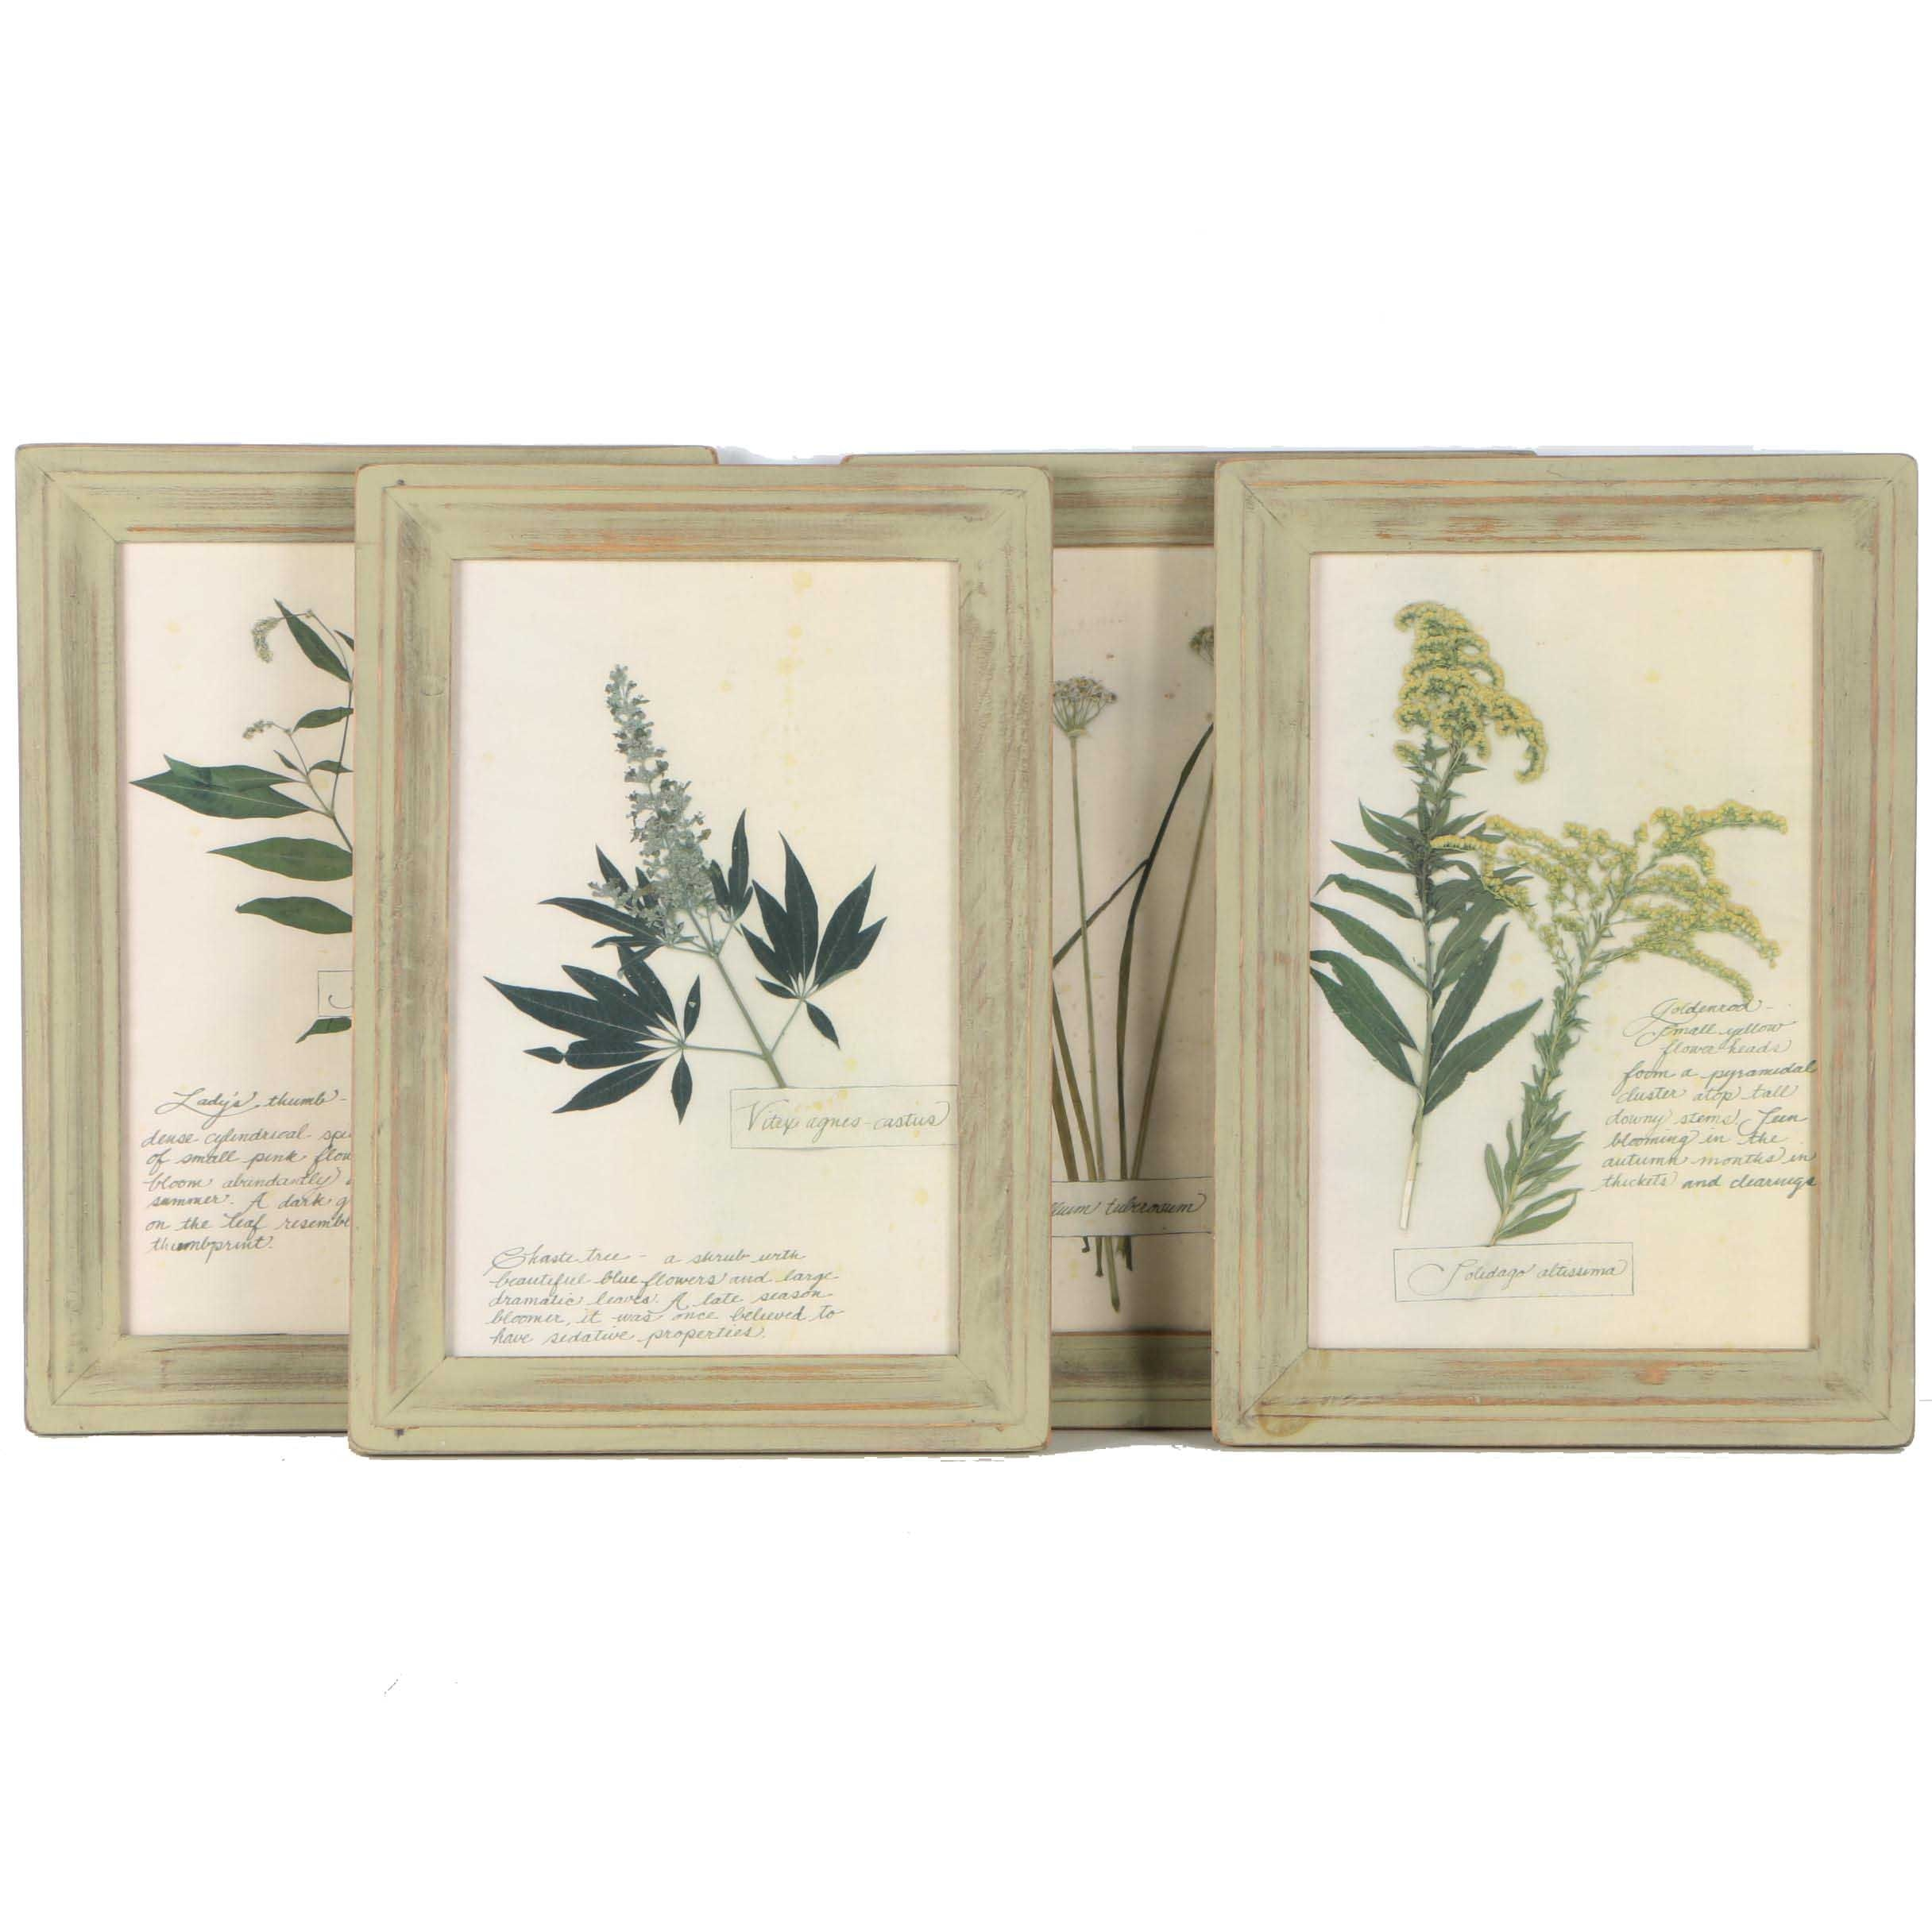 Four Offset Lithographs on Paper After Pressed Plants